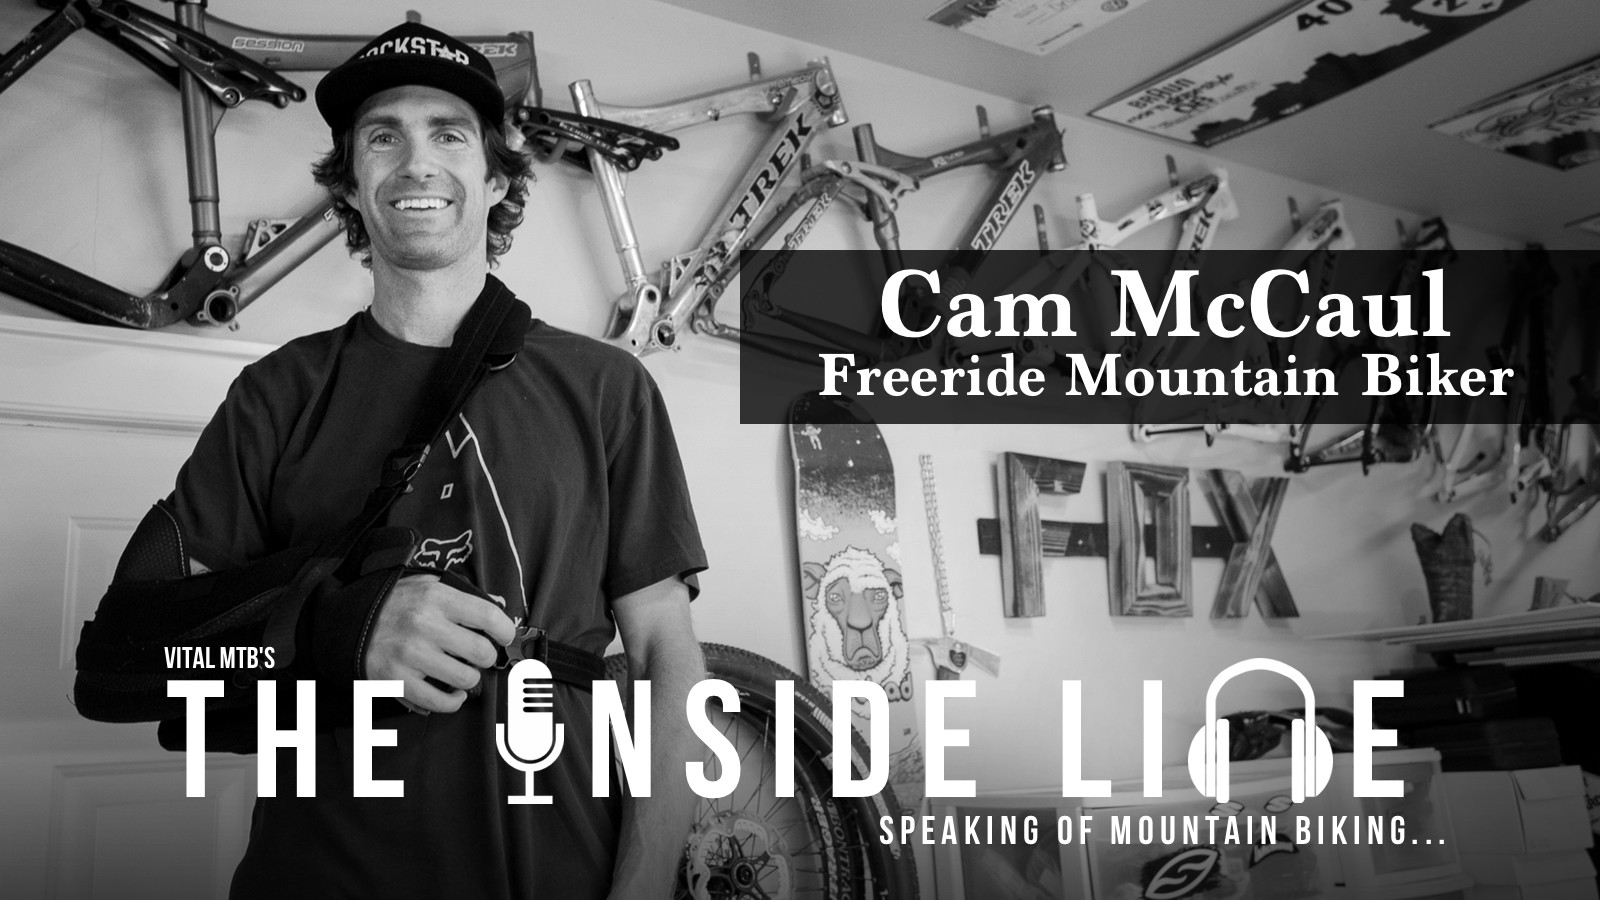 The Inside Line Podcast - Cam McCaul, Freeride Mountain Biker